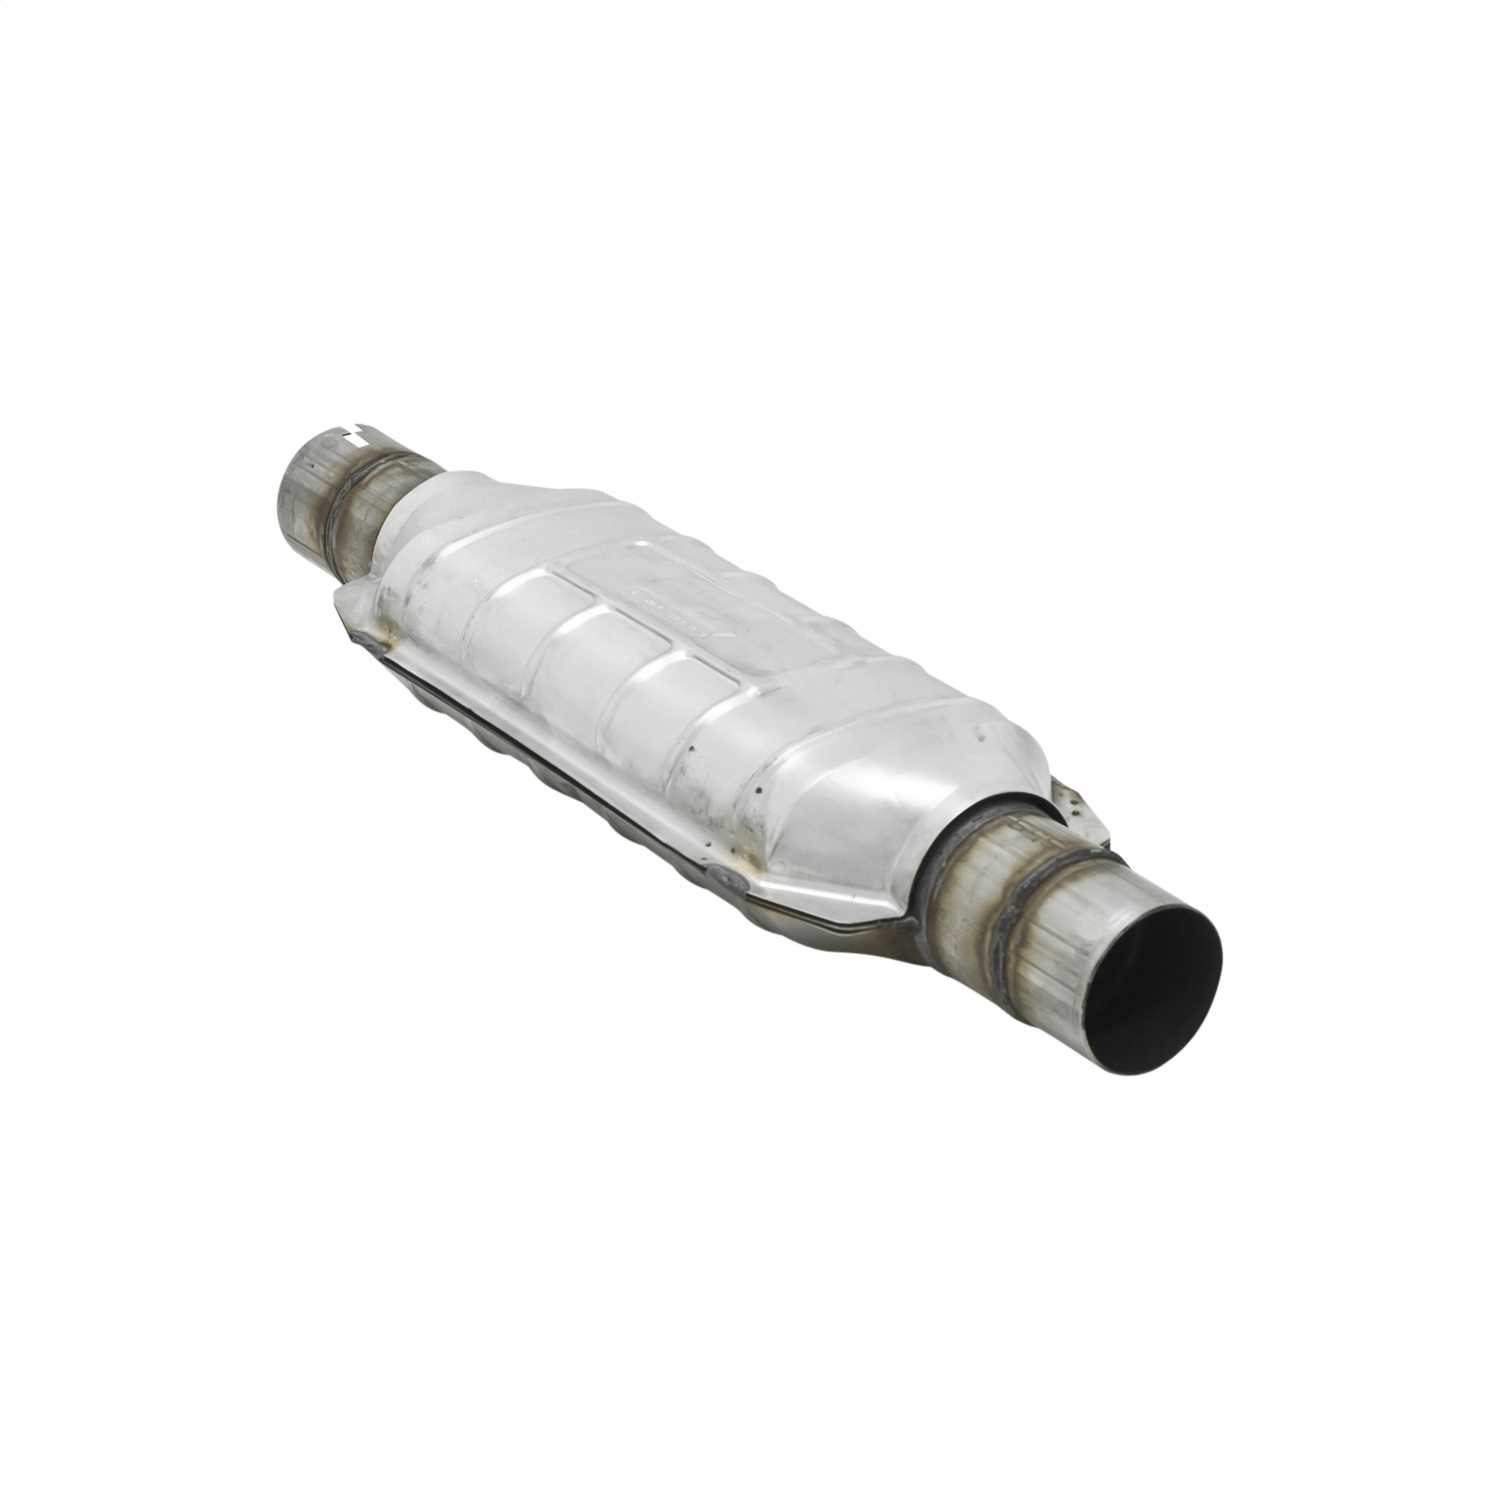 2010030 Flowmaster 49 State Catalytic Converters Direct Fit Catalytic Converter